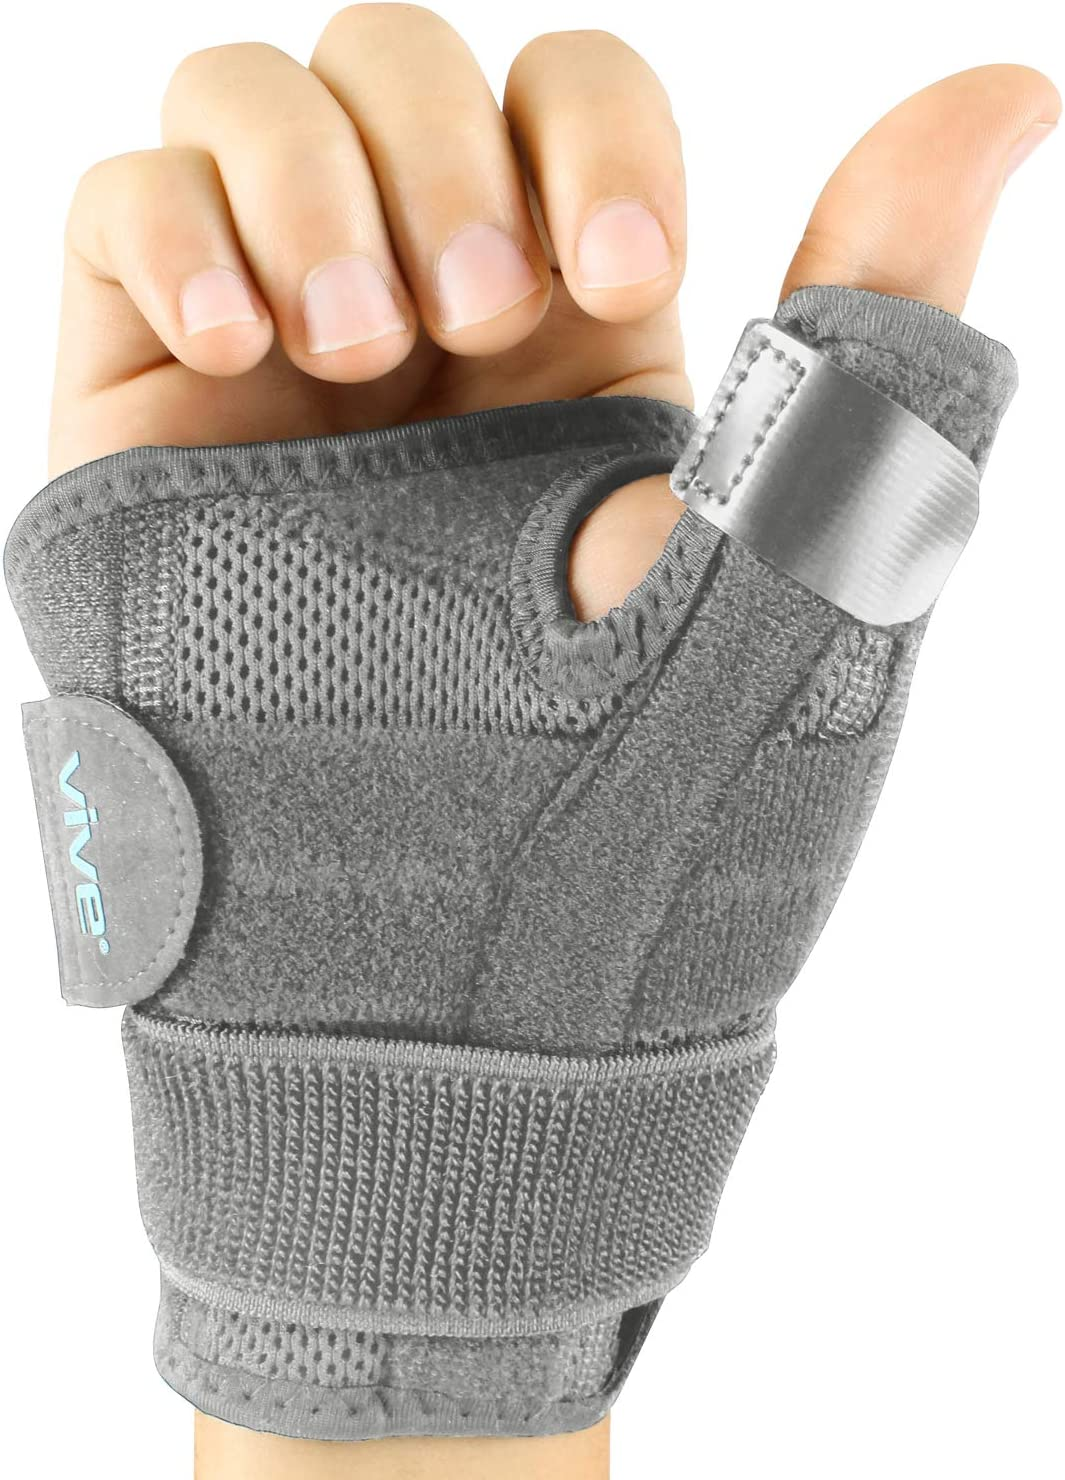 OFFicial Vive Arthritis Thumb Splint - Spica Brace Max 42% OFF for Right and Support